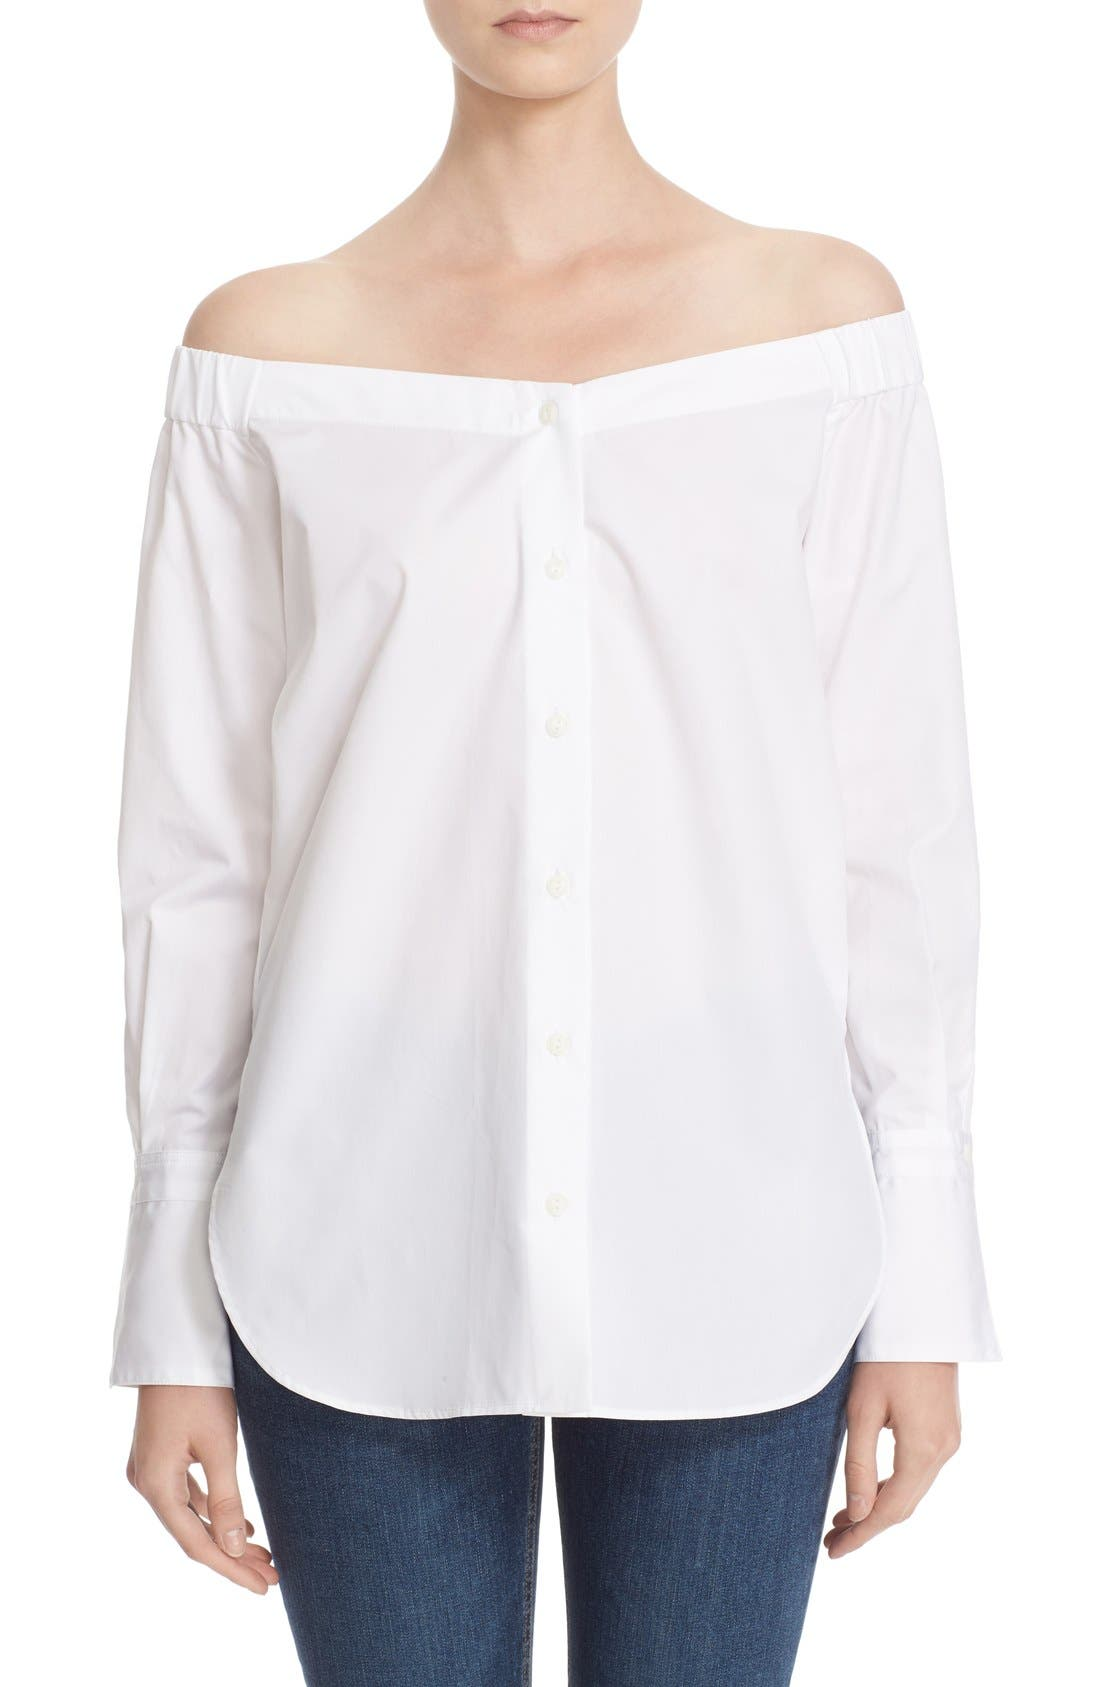 'Kacy' Reversible Off the Shoulder Tunic Top,                         Main,                         color, 100